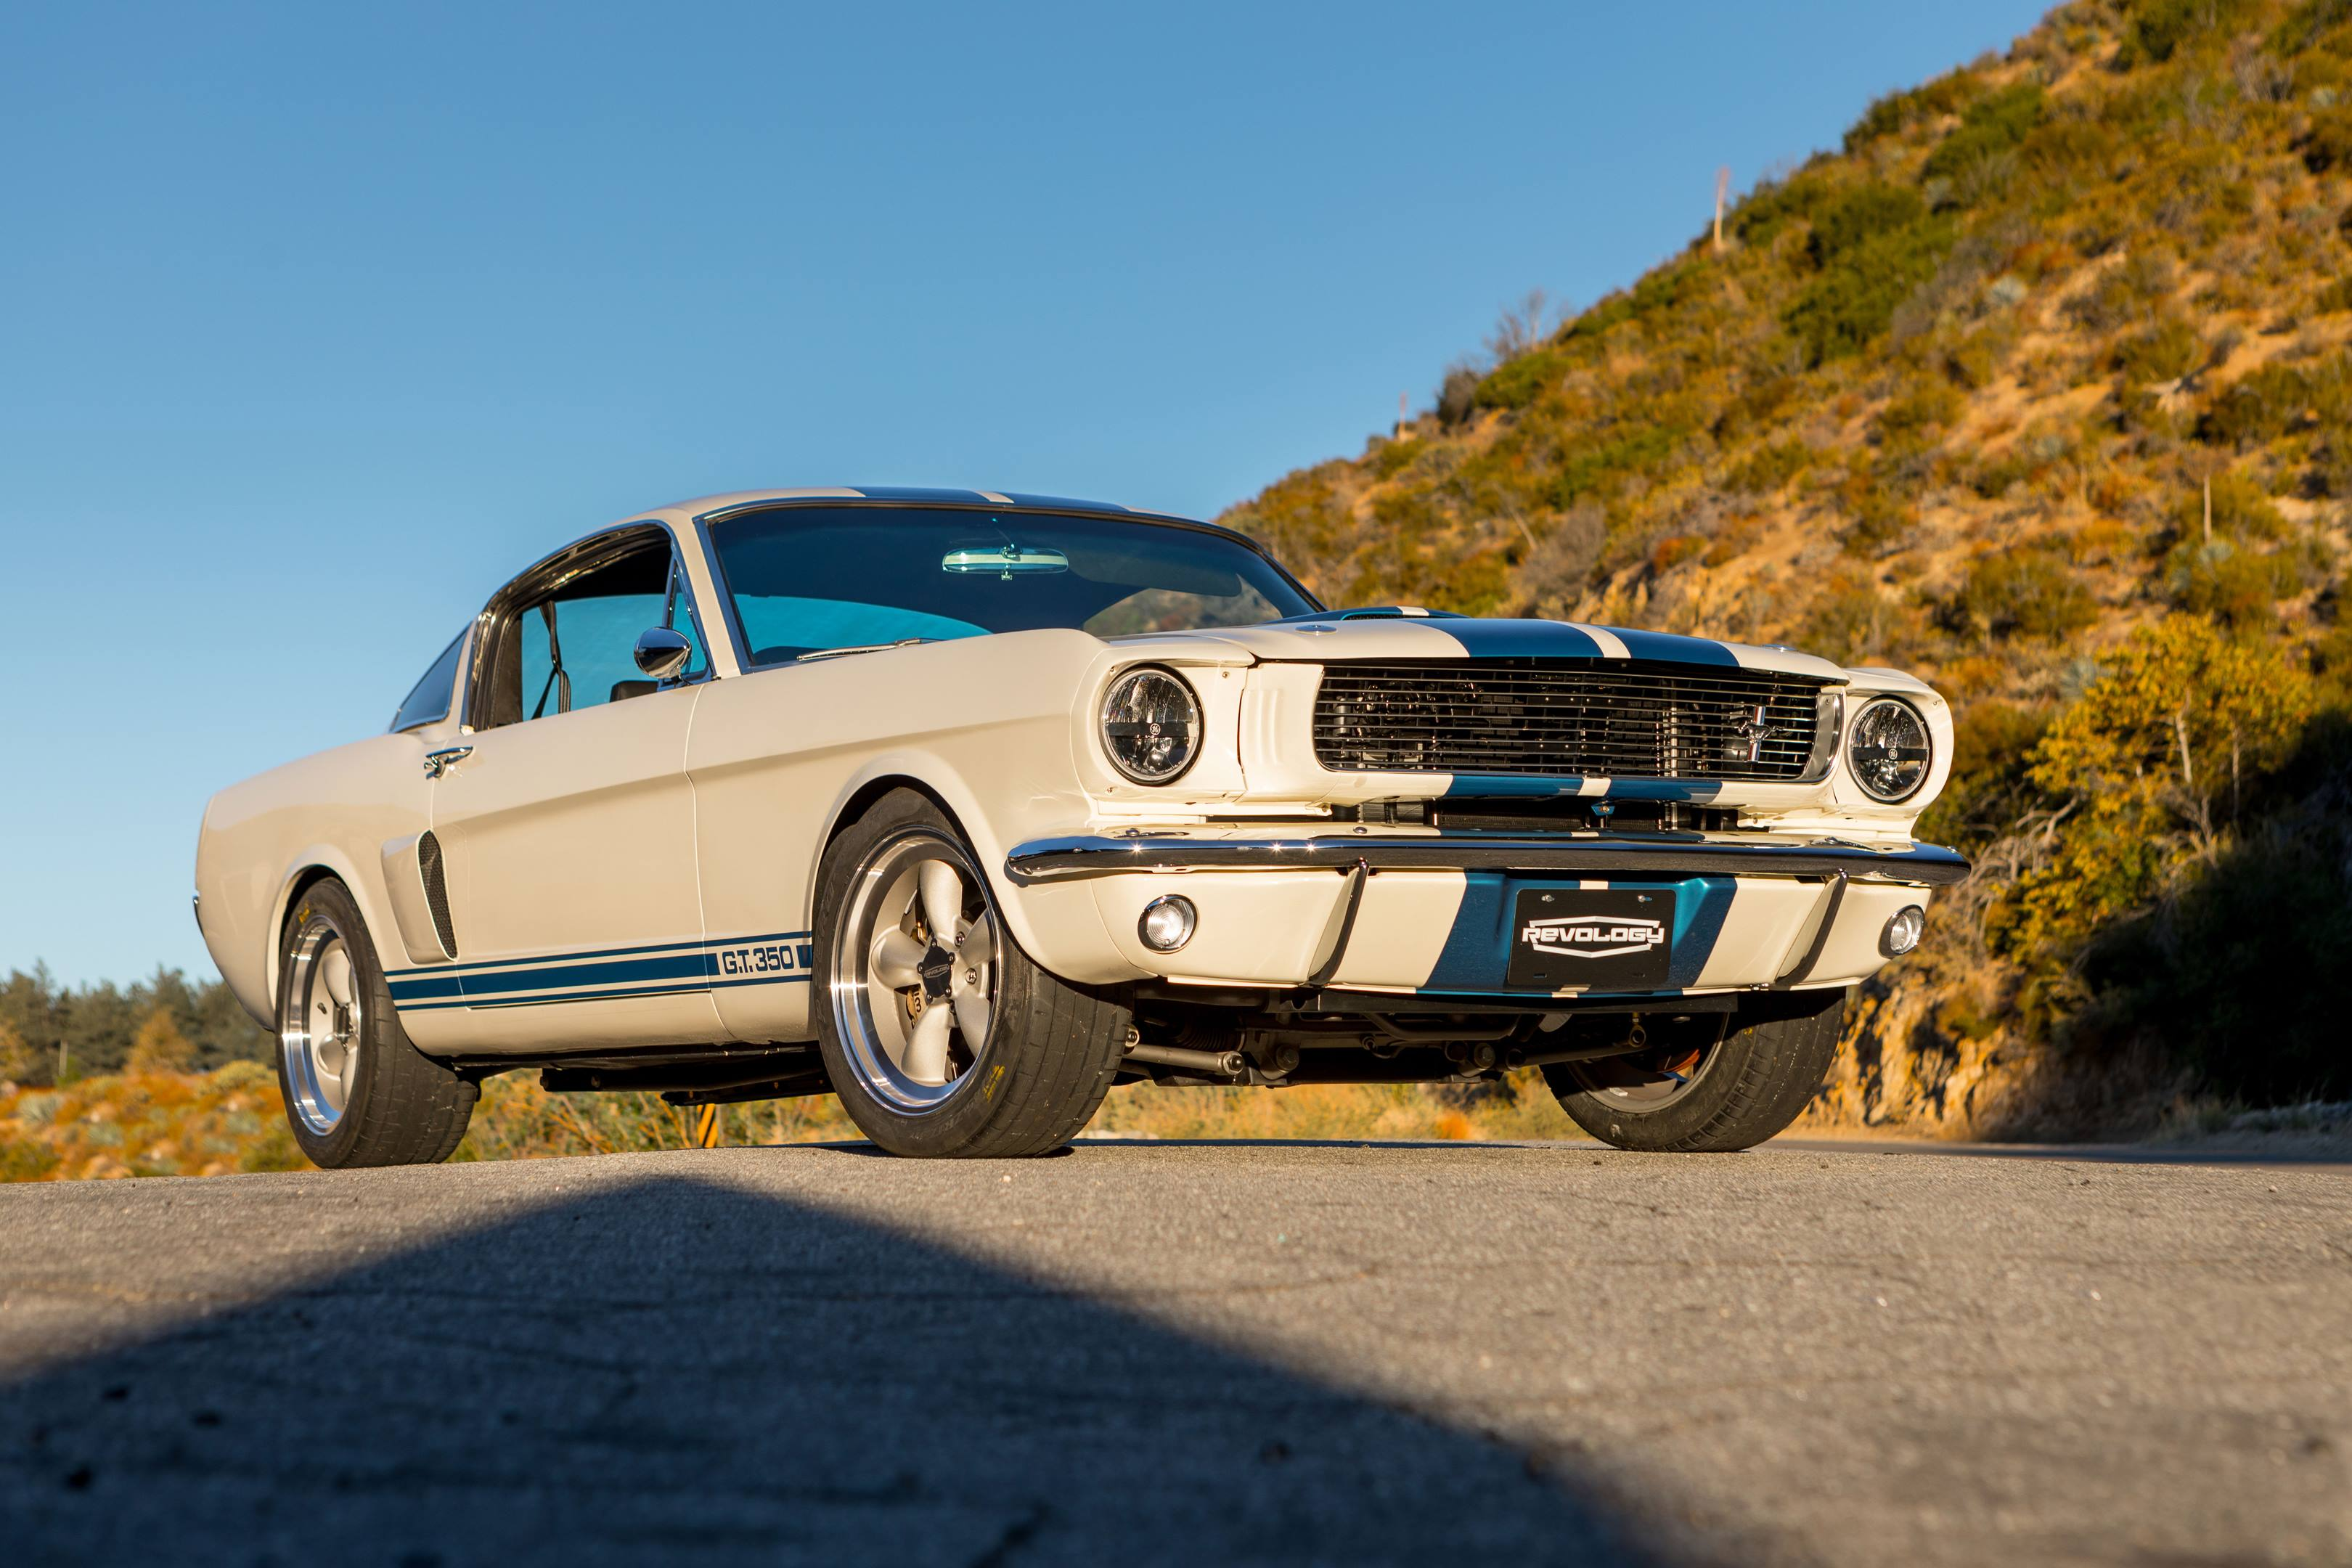 Revology GT350 low front 3/4